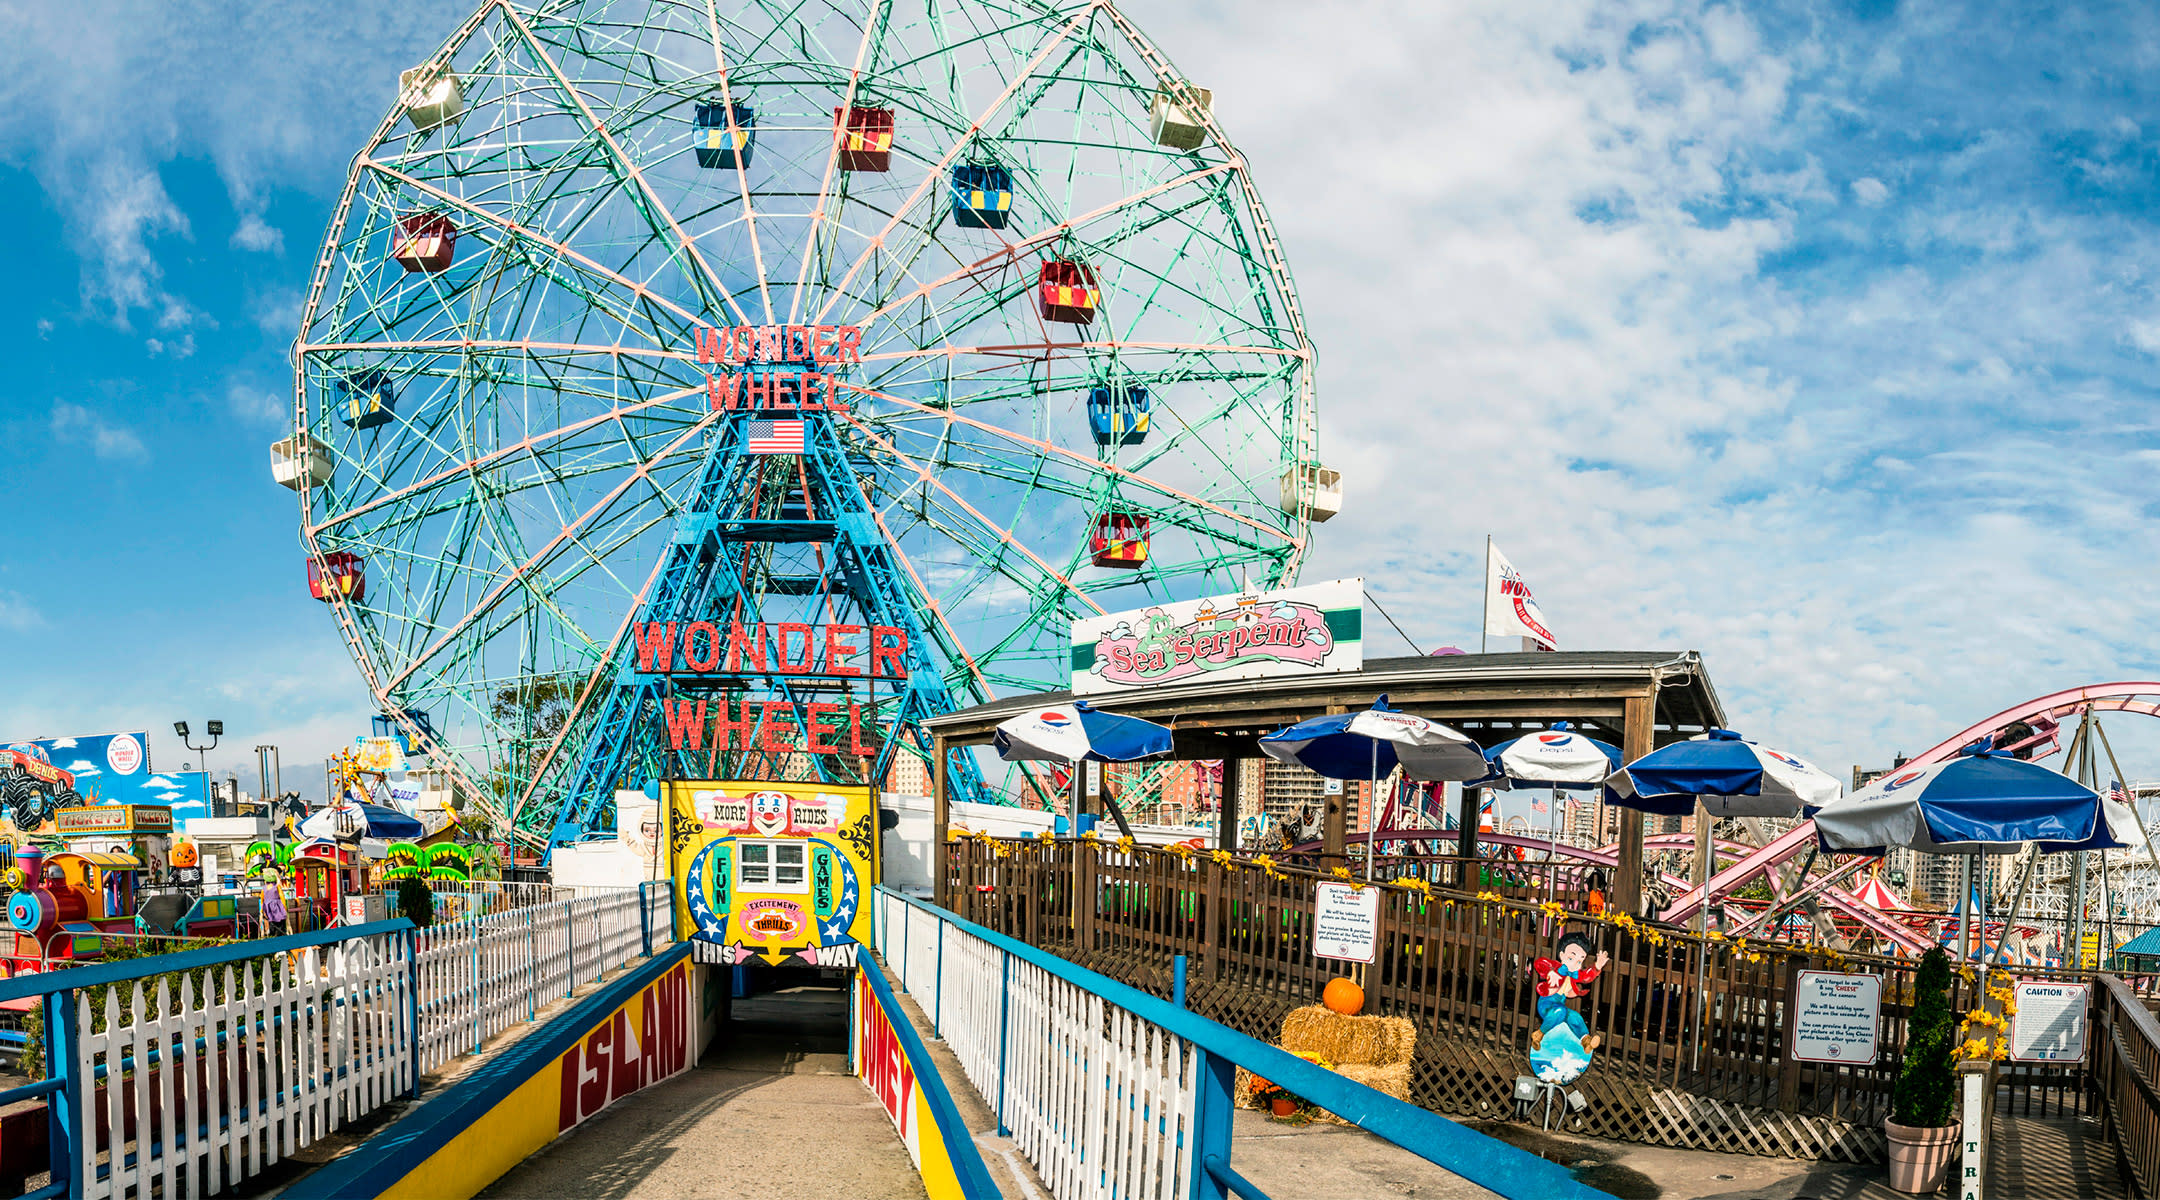 coney island amusement park, wonder wheel